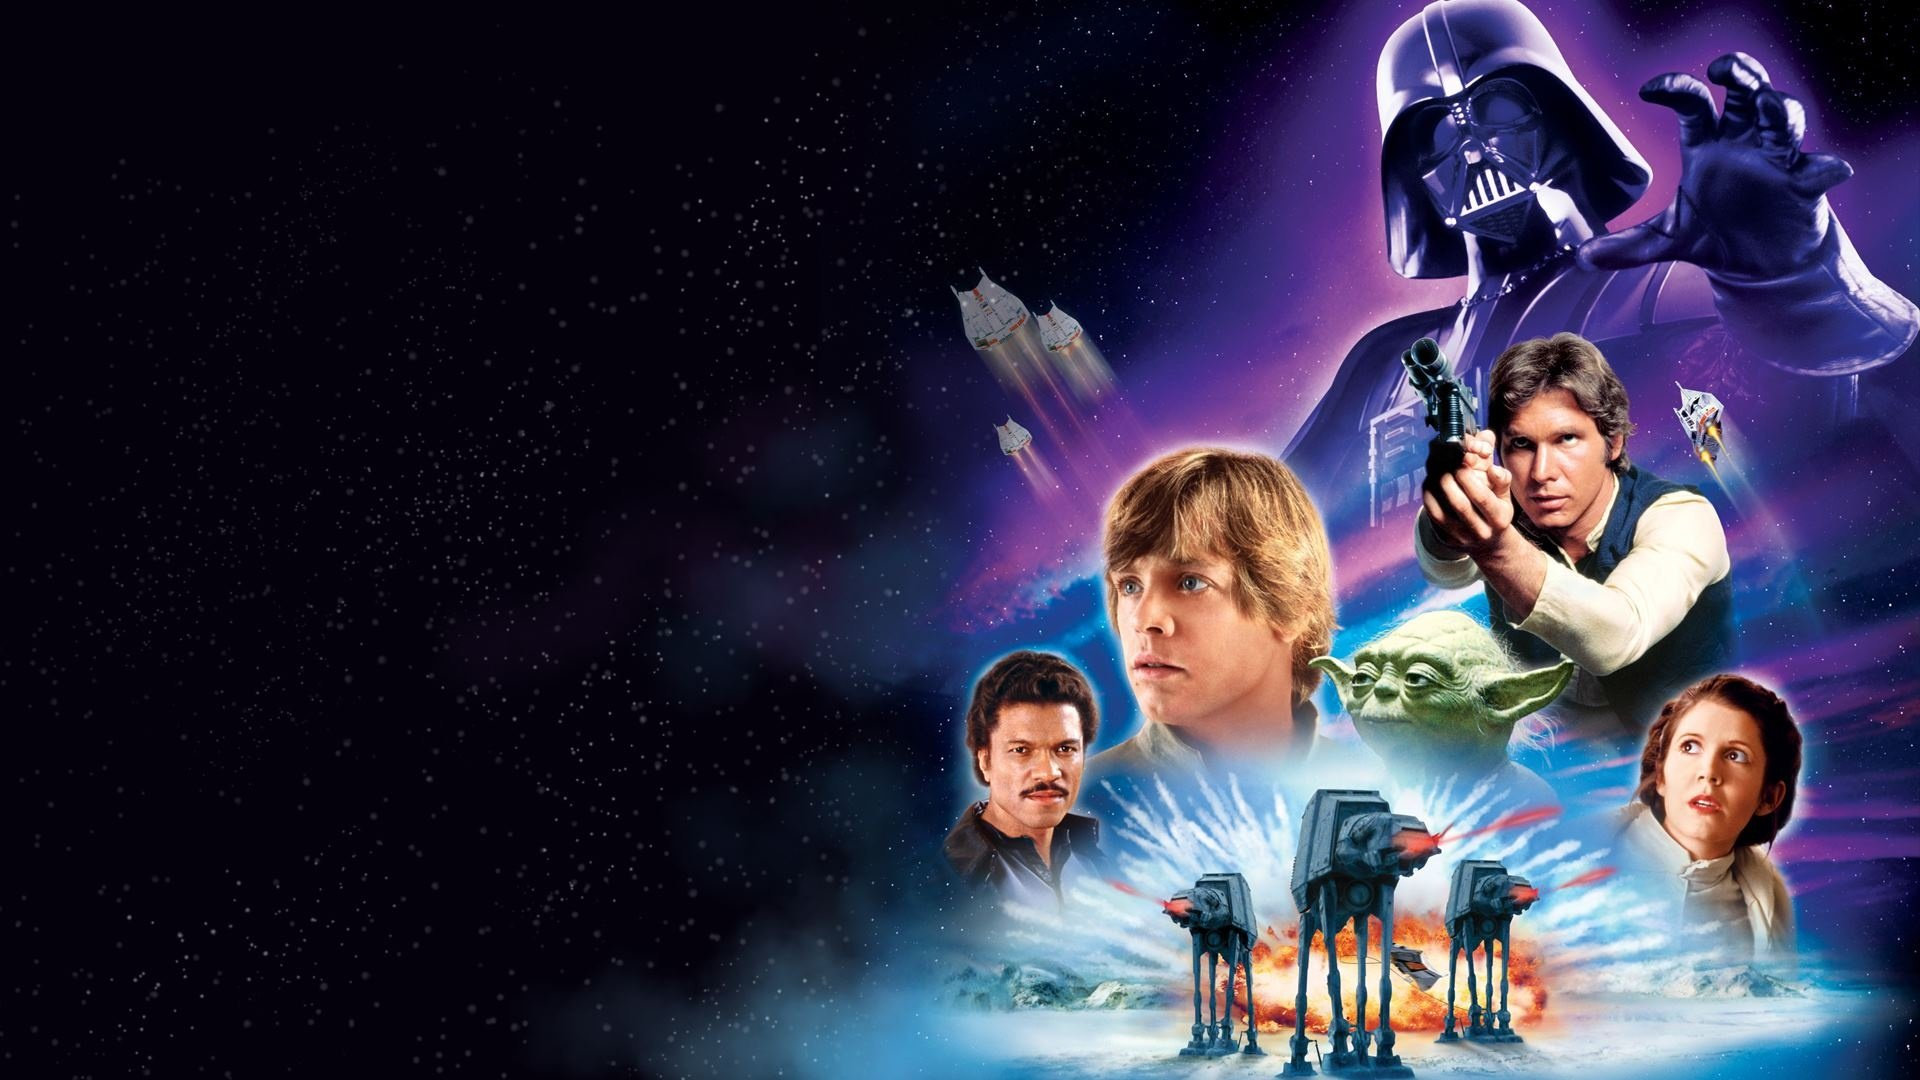 Free Download Star Wars Episode V The Empire Strikes Back